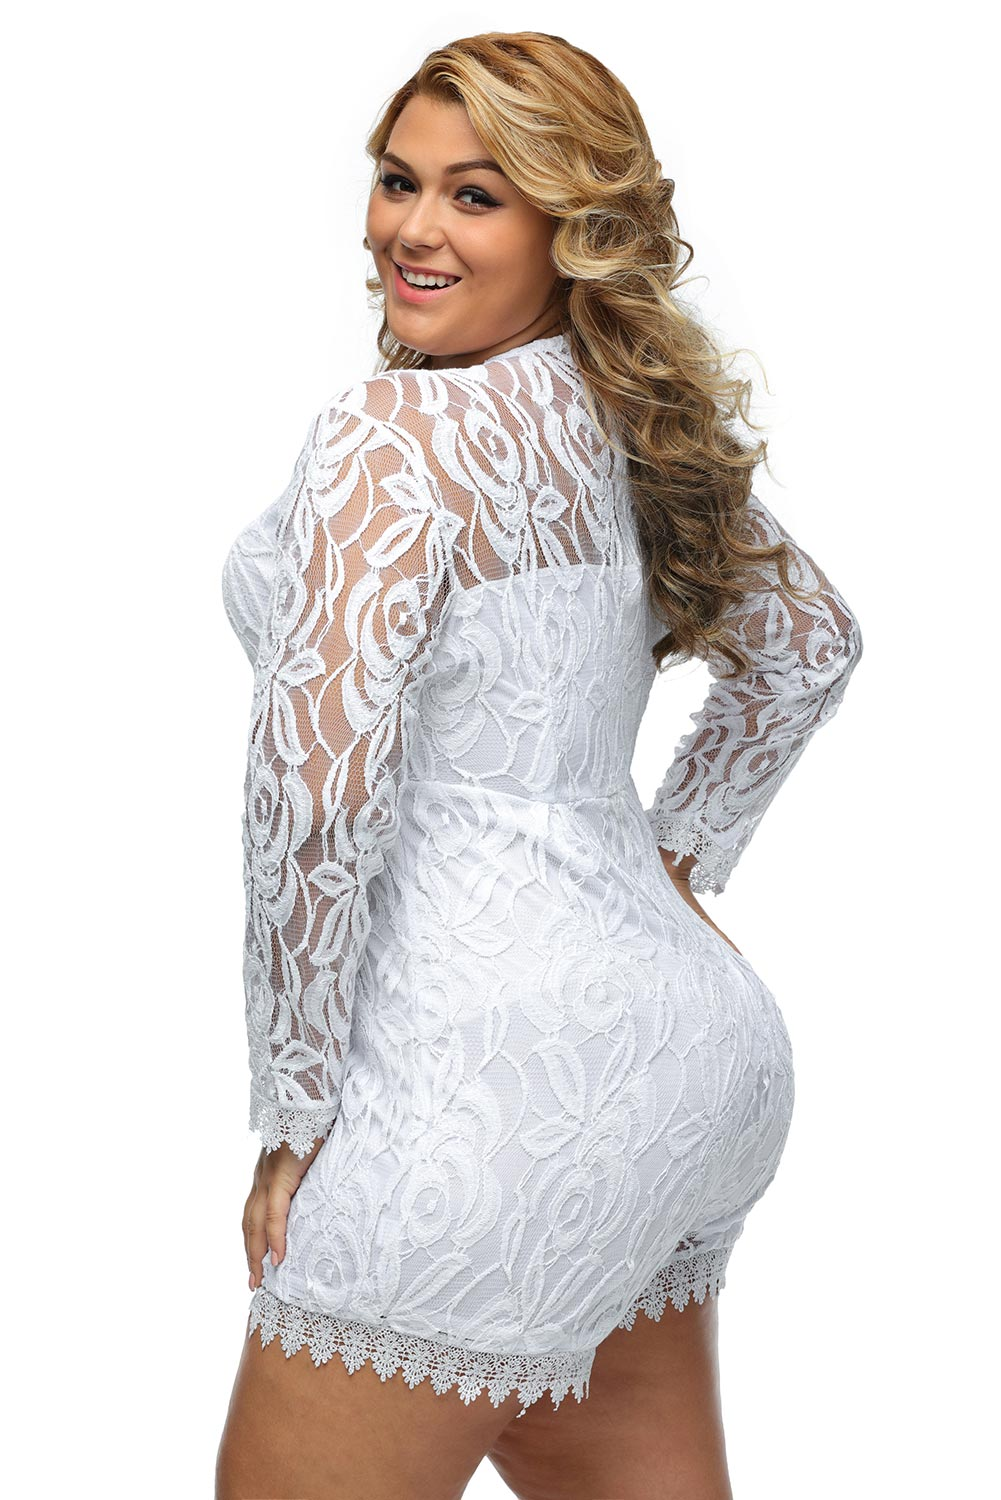 Women Black Plus Size Long Sleeve Lace Romper Dress Festive Cute